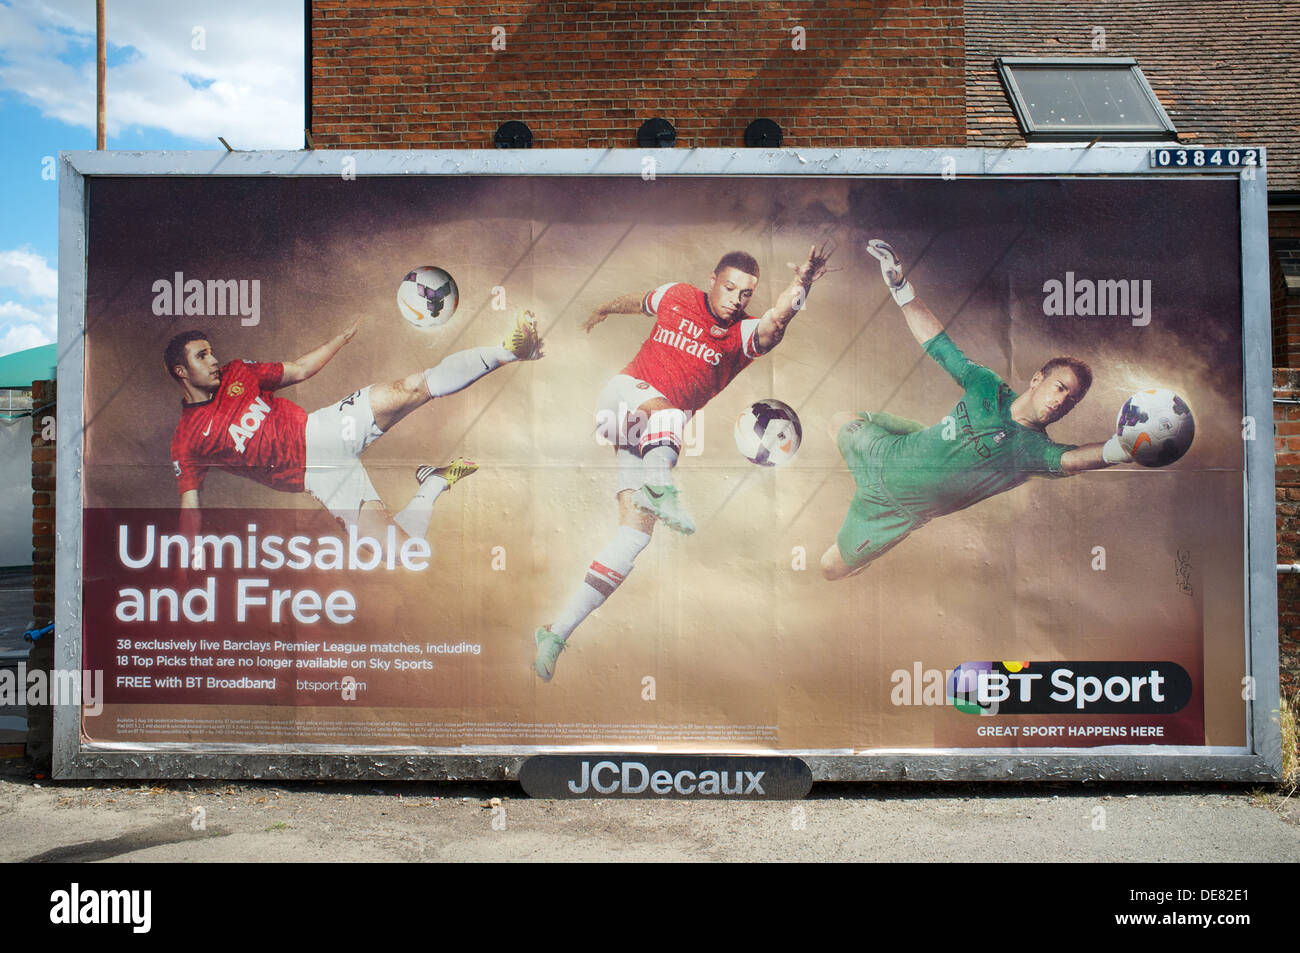 Billboard advertising BT Sport - Stock Image